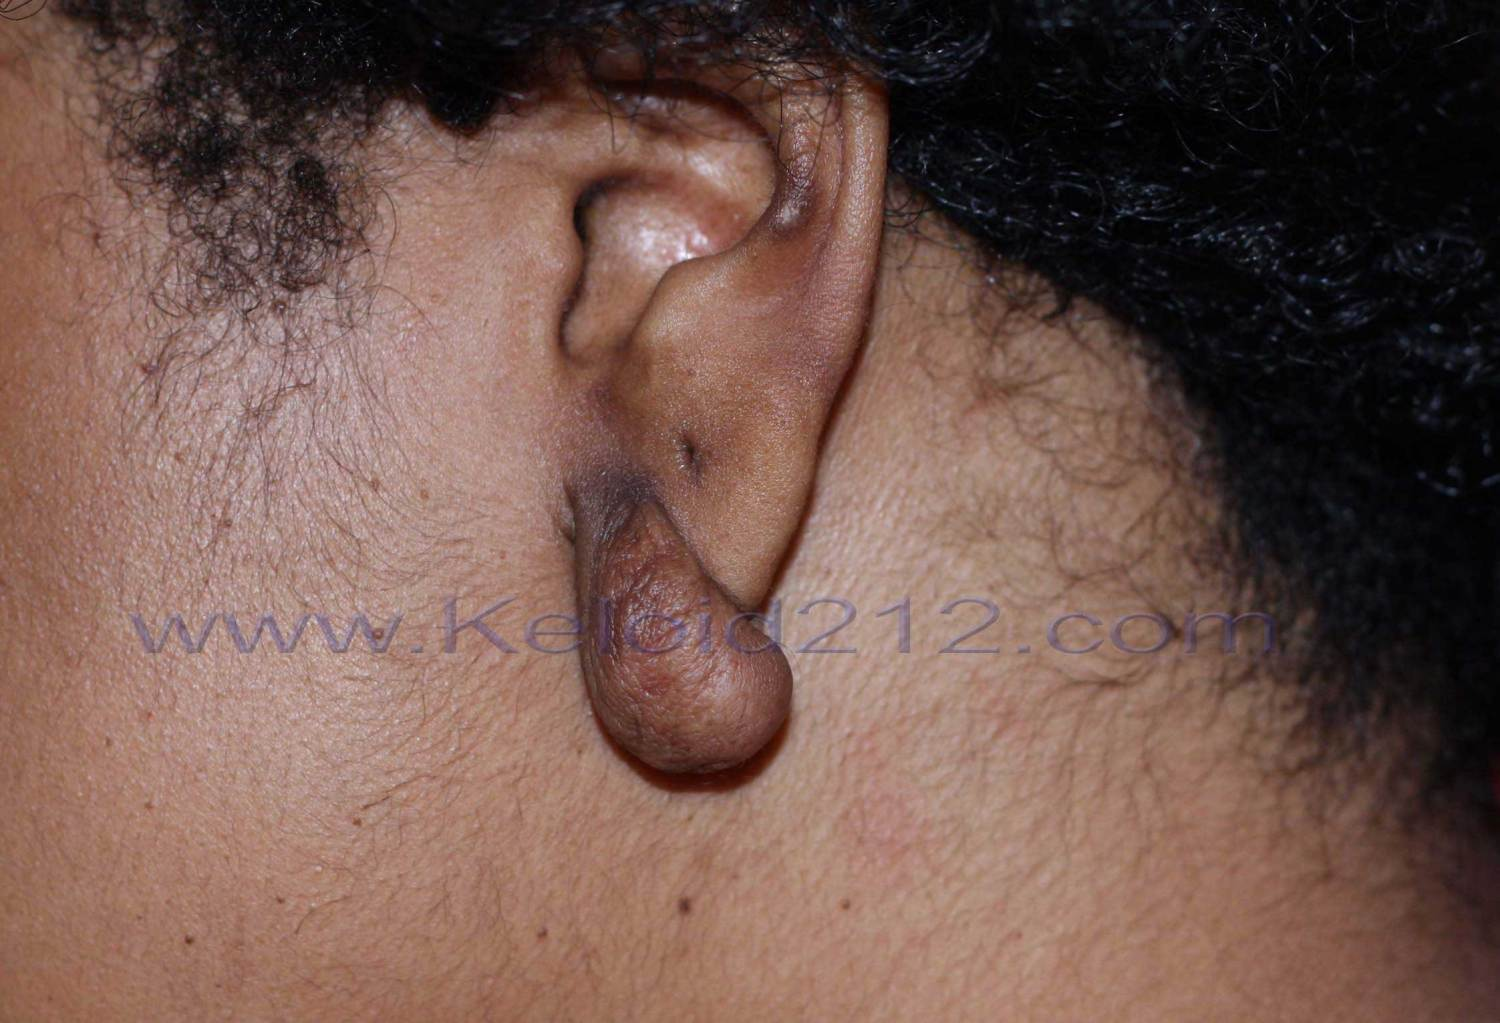 Earlobe Keloids Treatment